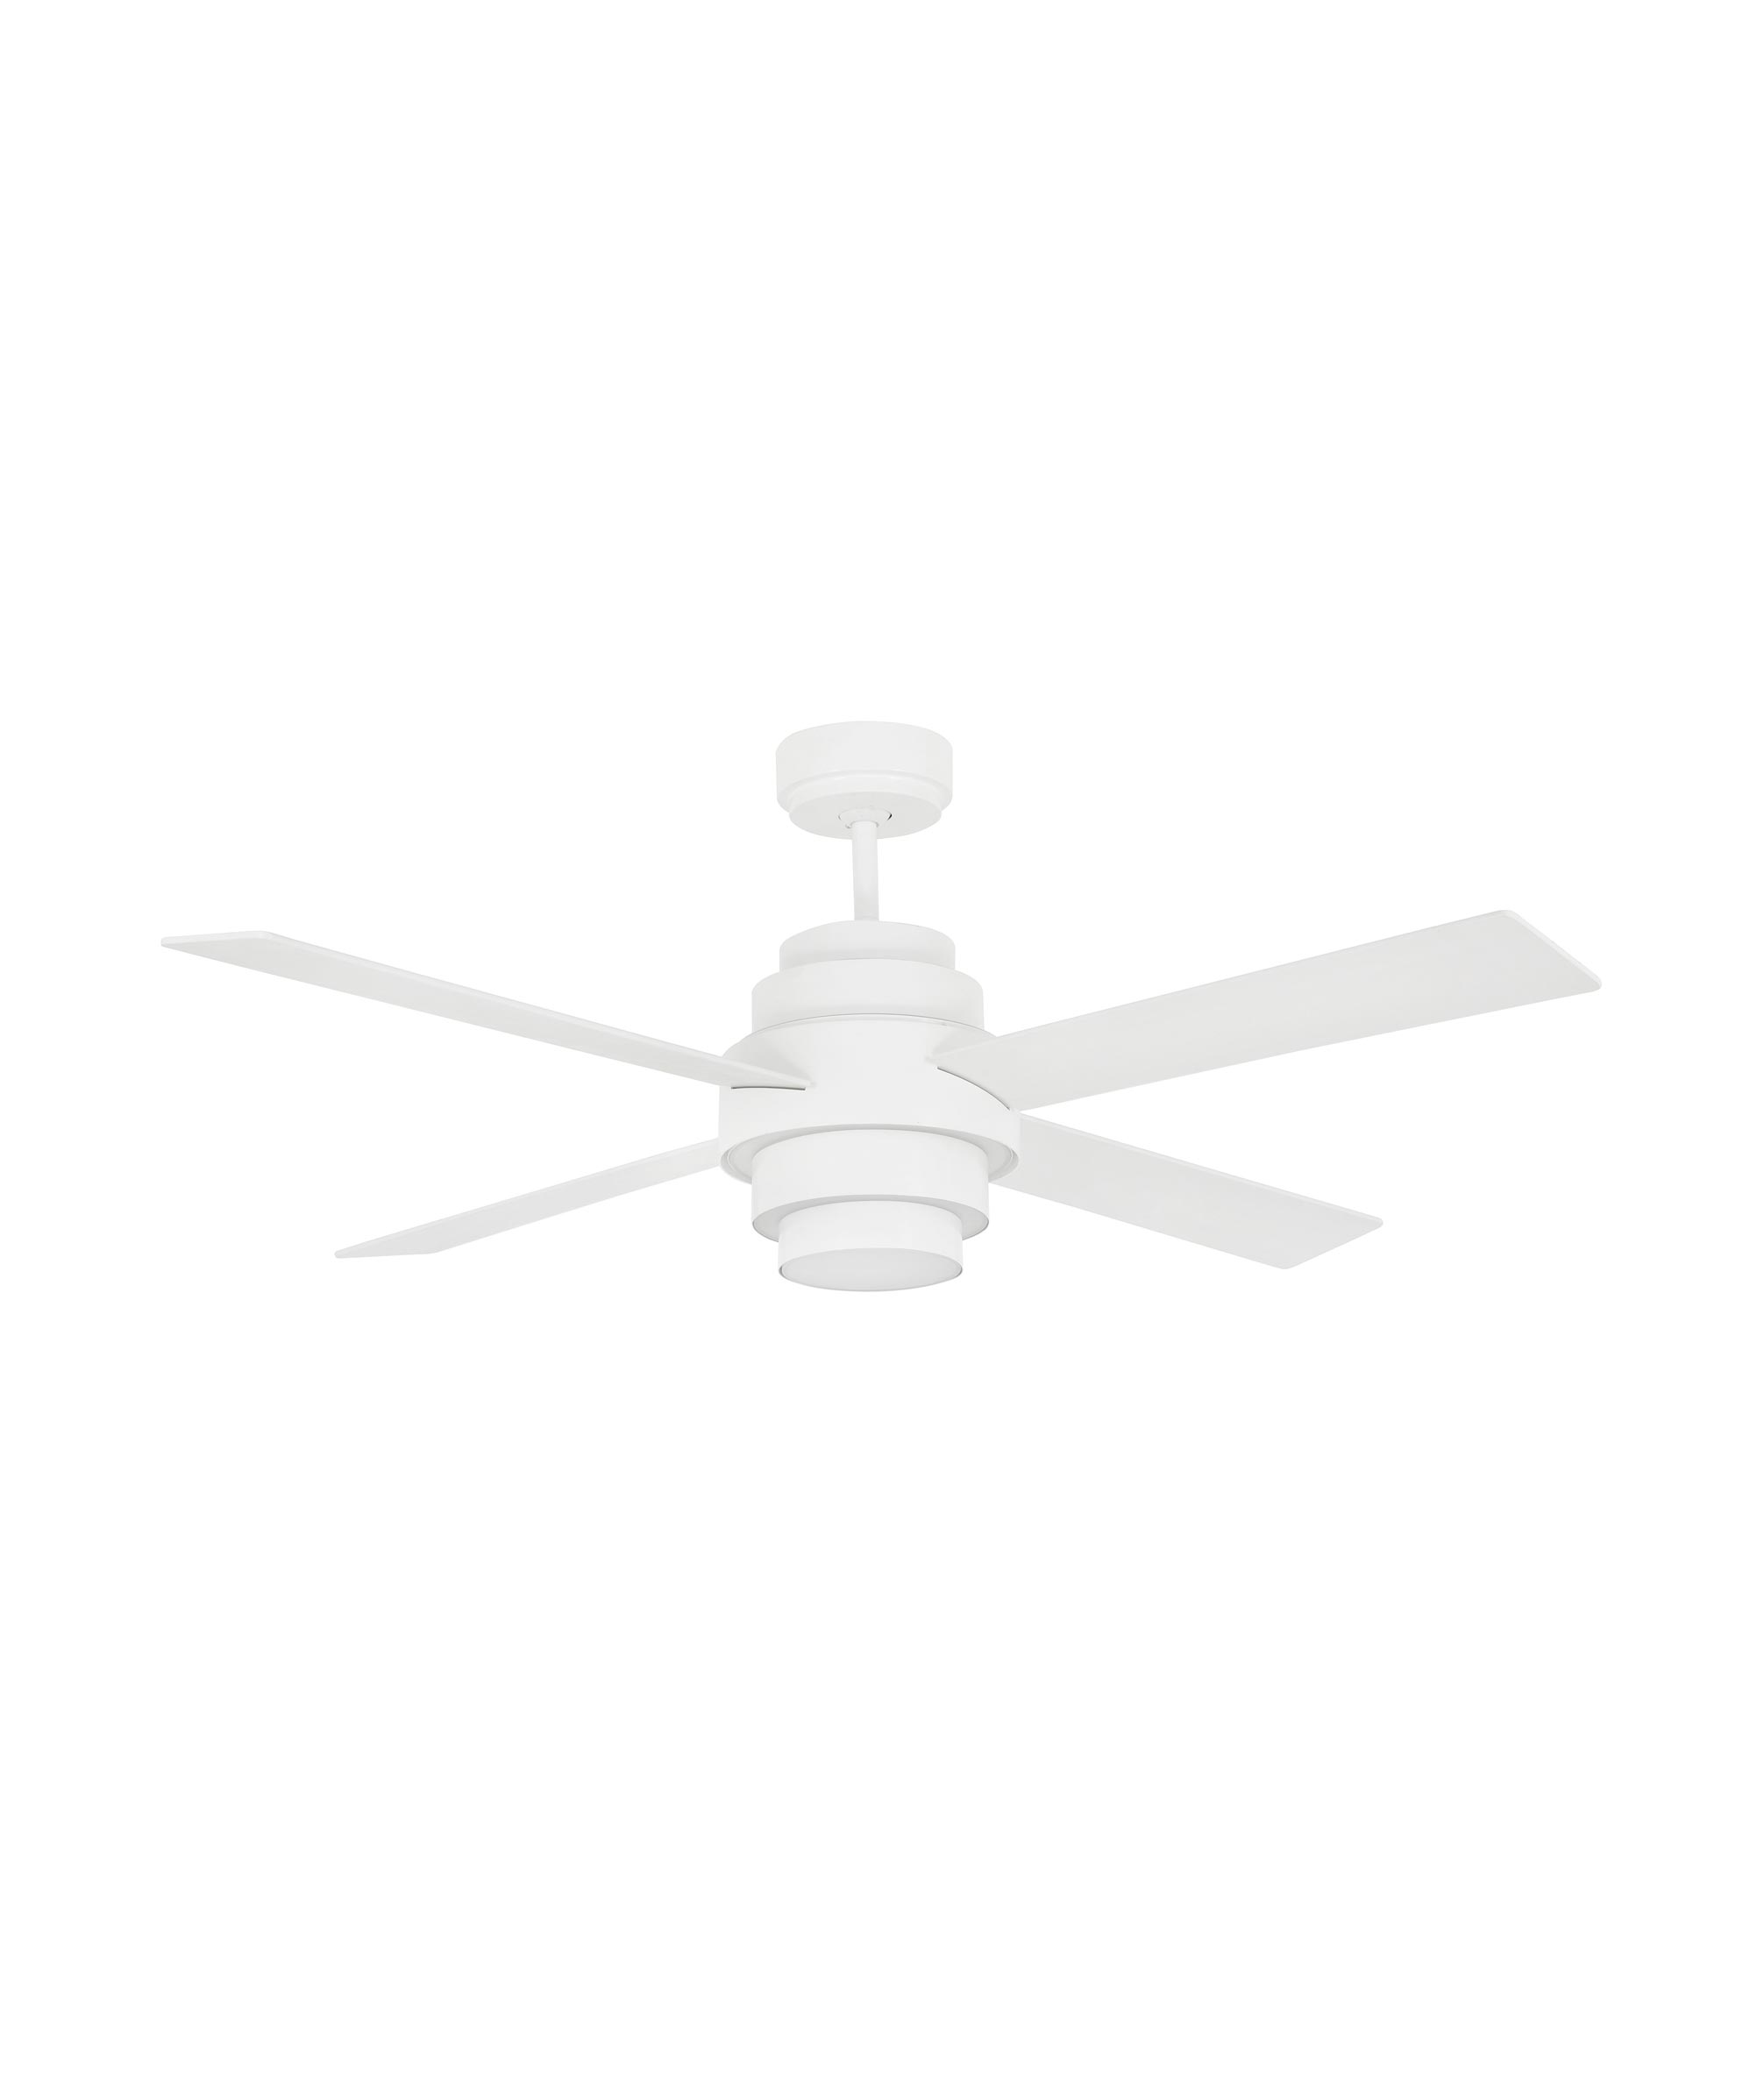 Ventilador blanco DISC FAN LED